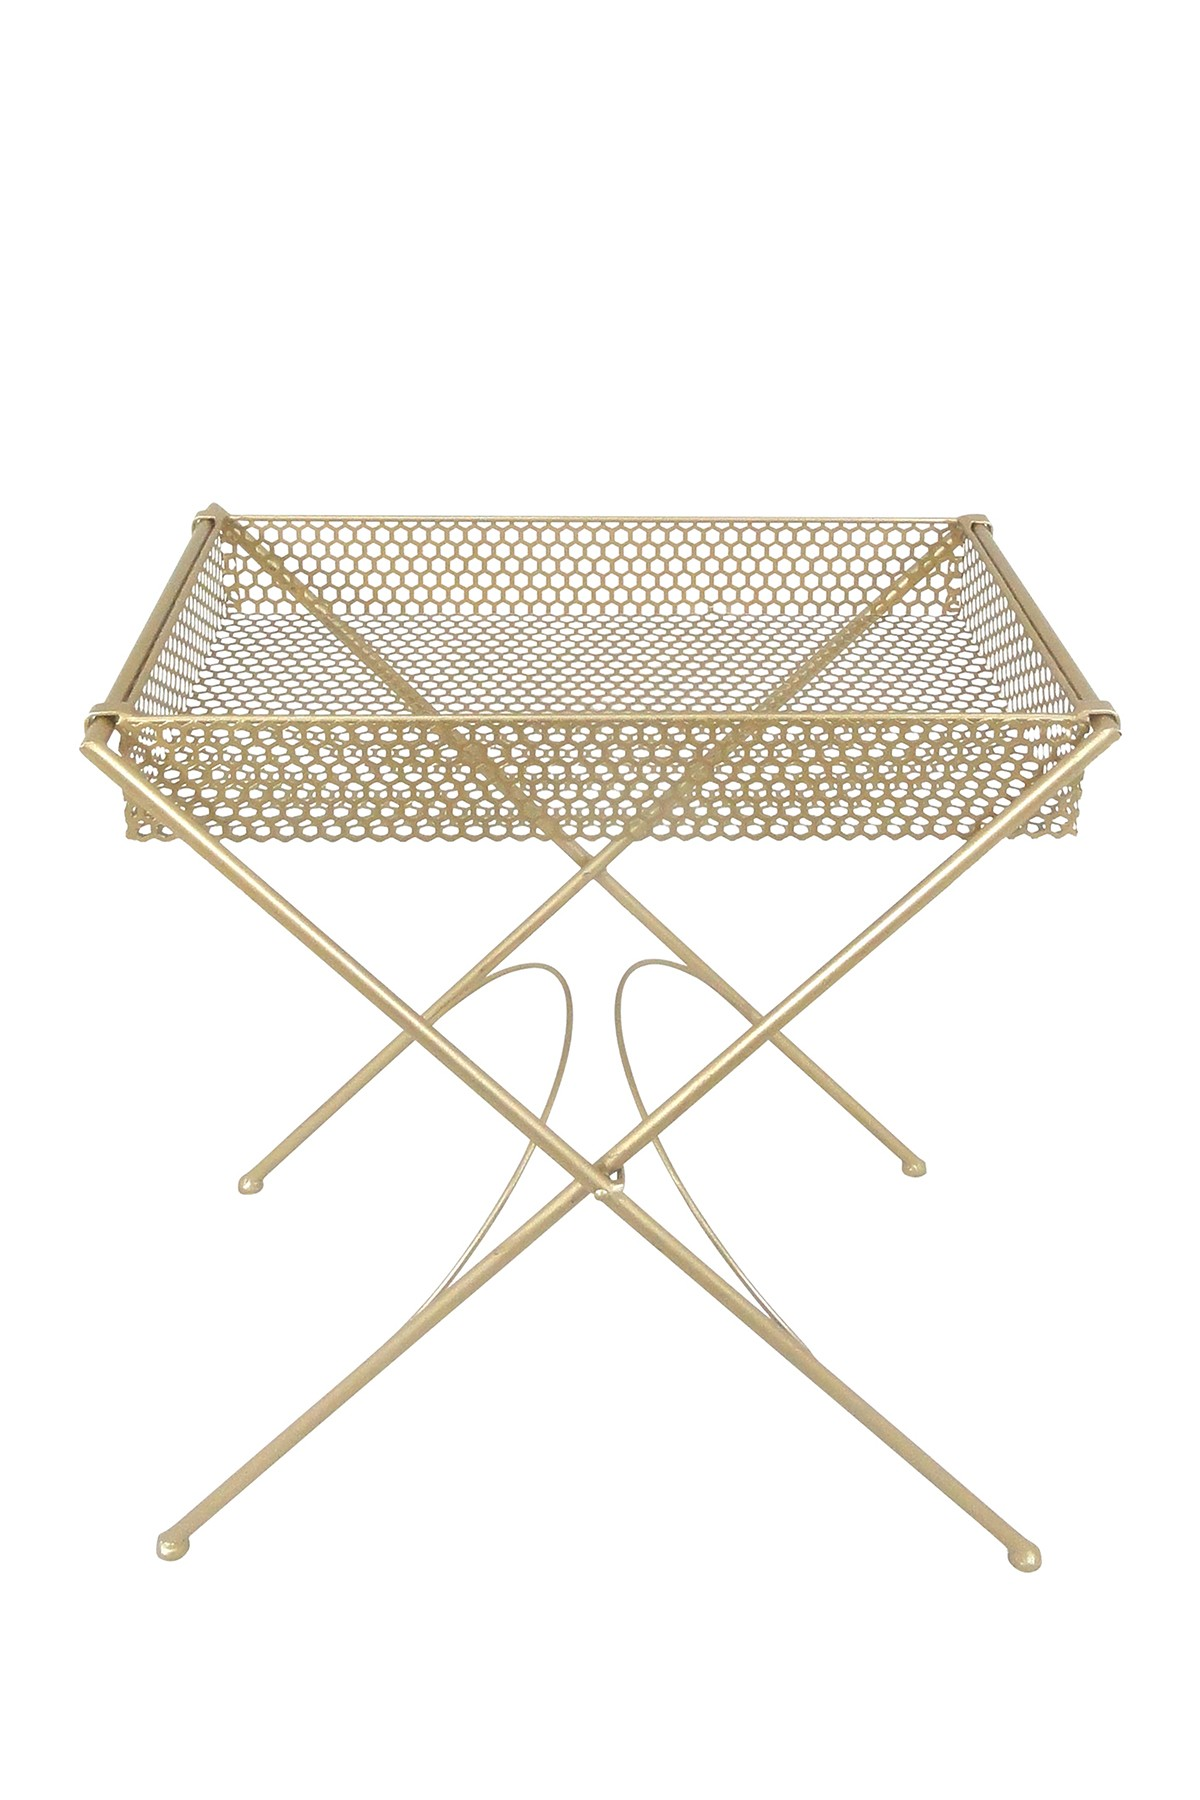 sagebrook home gold metal accent table nordstrom rack shower curtains tuscan furniture west elm couch rustic end tables lamp round mirrored side outdoor kitchen dining sets